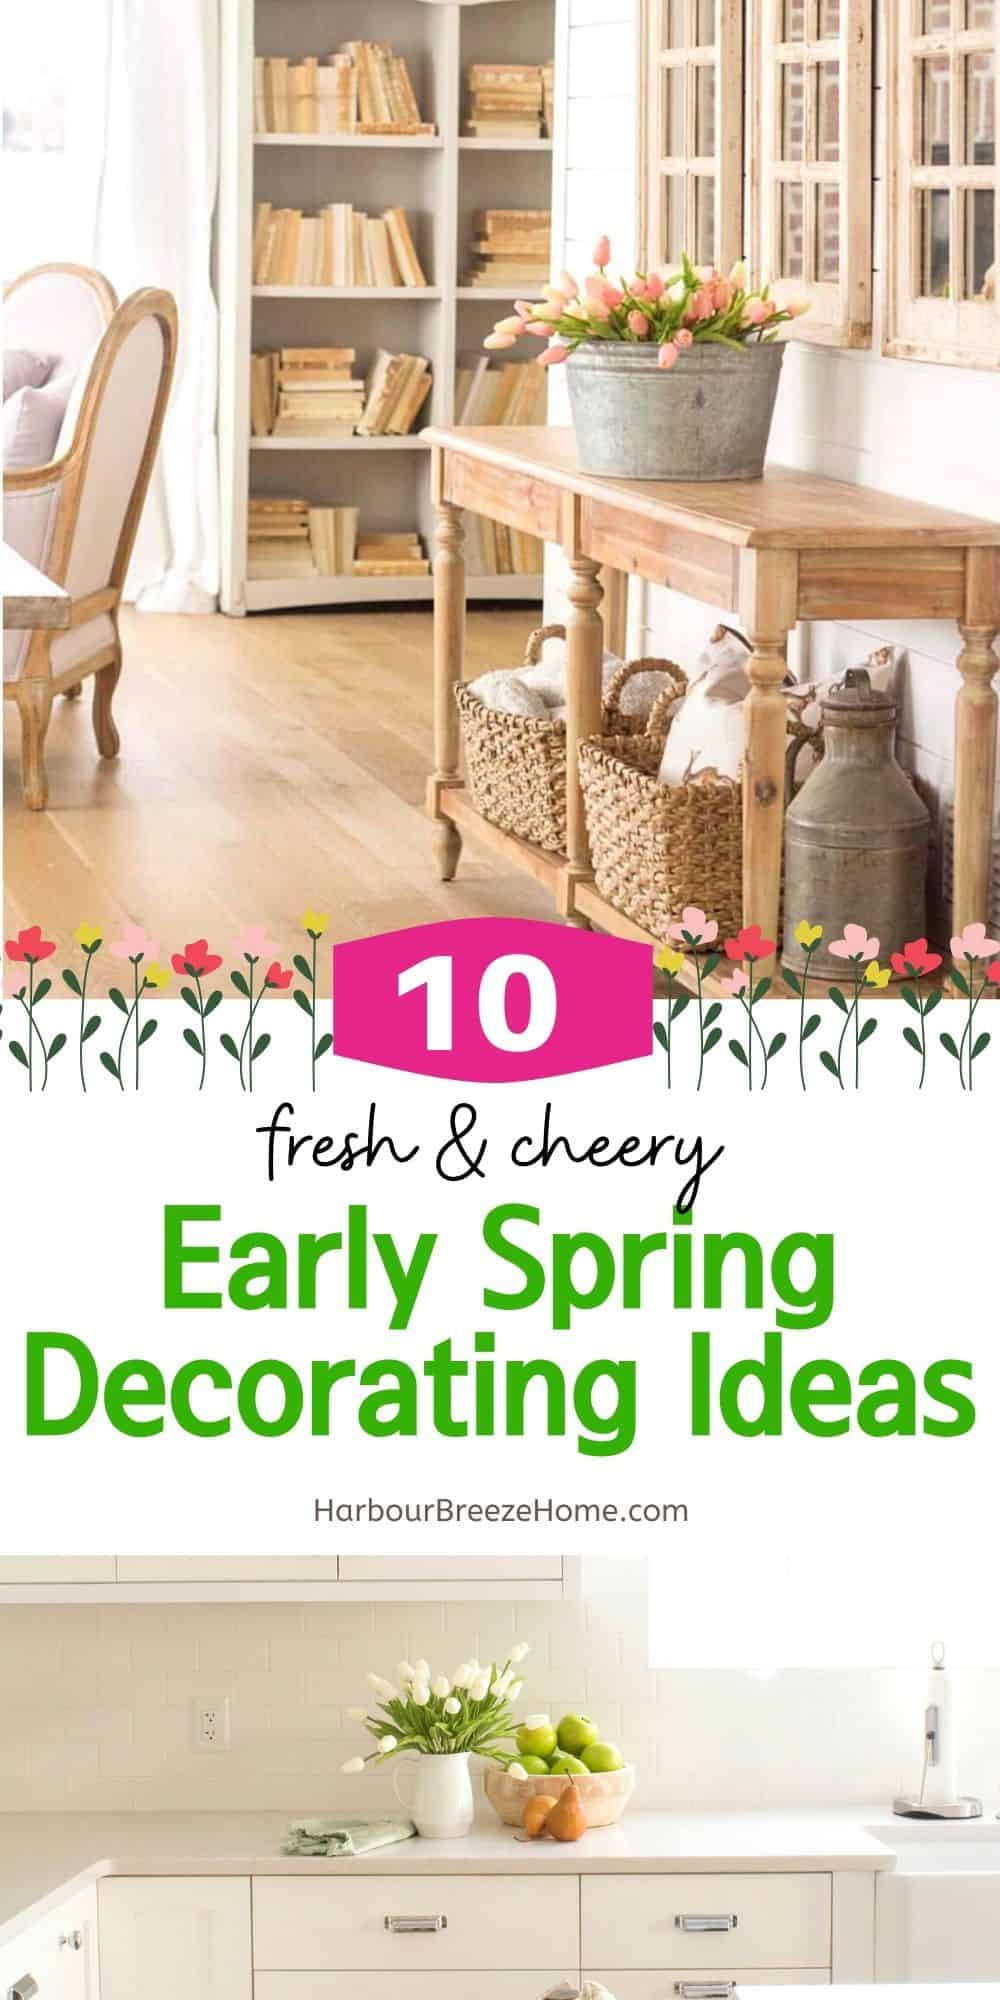 Early Spring decorating ideas in a collage picture of buckets of tulips arranged and placed in different parts of the house.